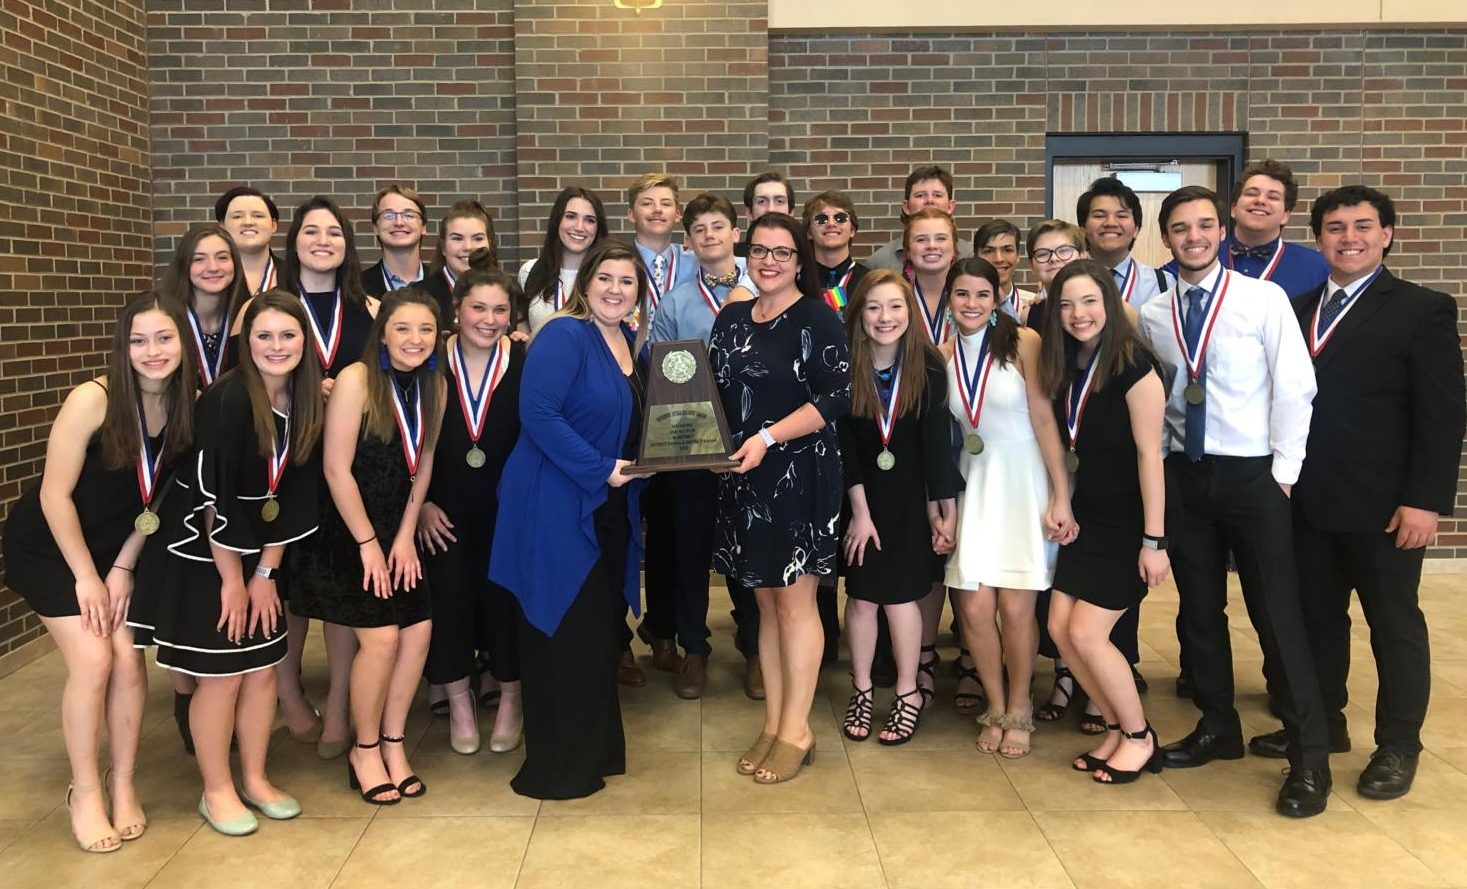 The one act play advances to Area after receiving third at Bi-Districts on March 25, 2019 (Photo Cred: Kelly Zindel).